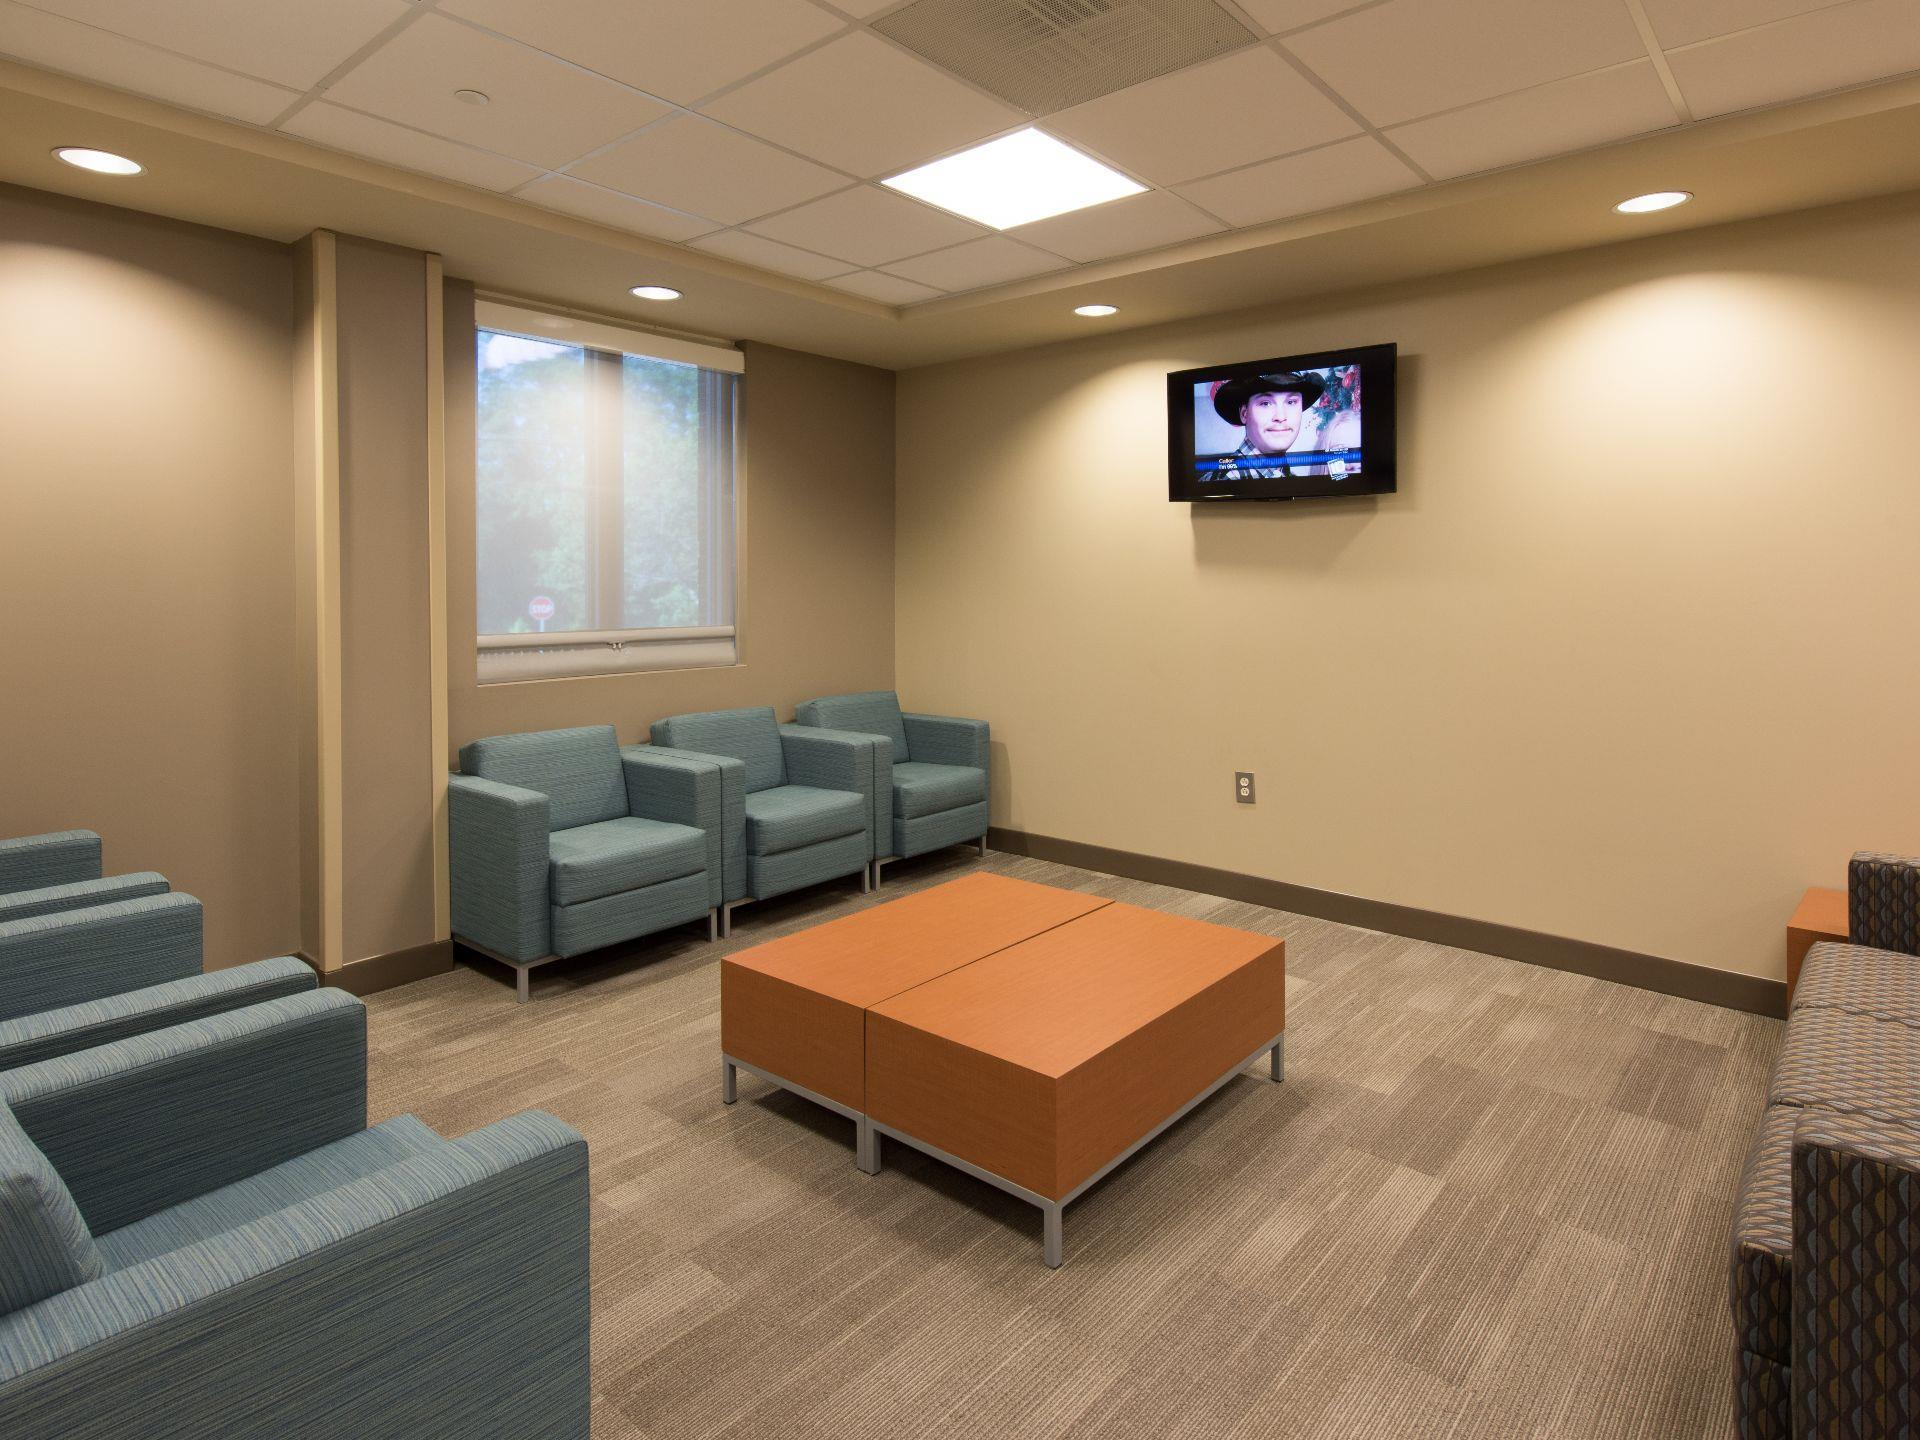 Waiting area with couches with coffee table and TV on wall.